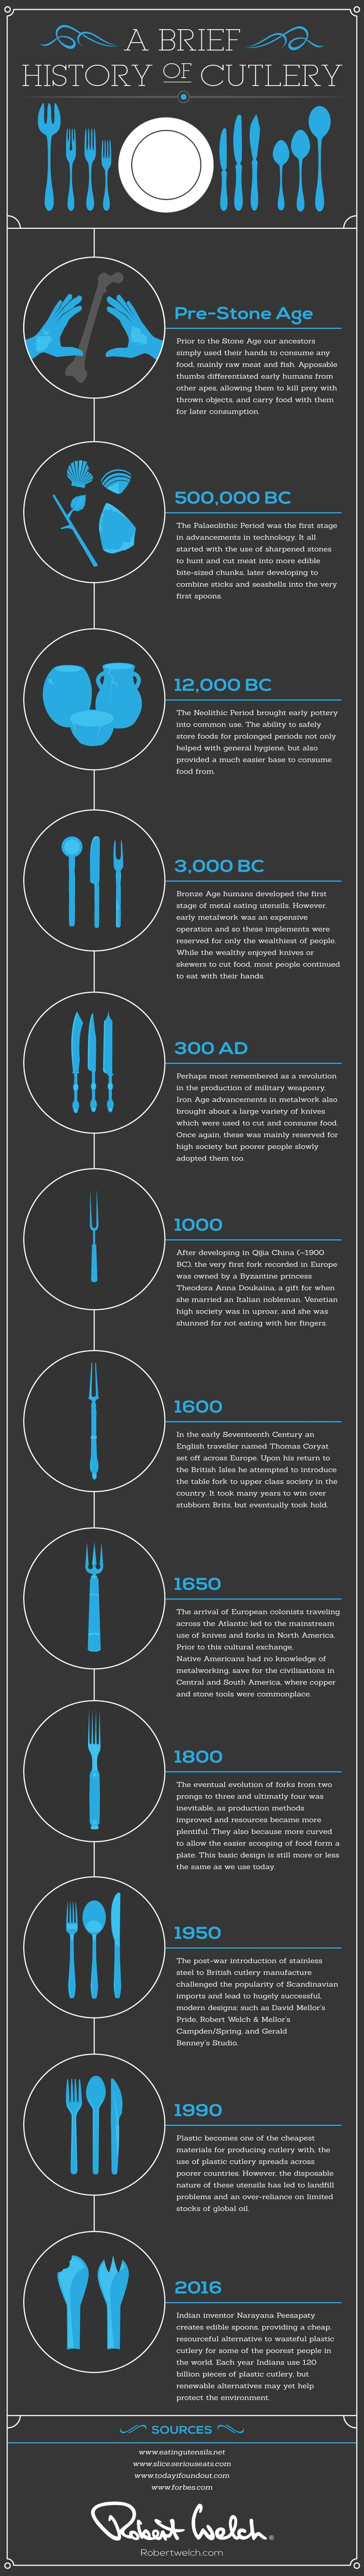 A Brief History of Cutlery #Infographic #Kitchen #History